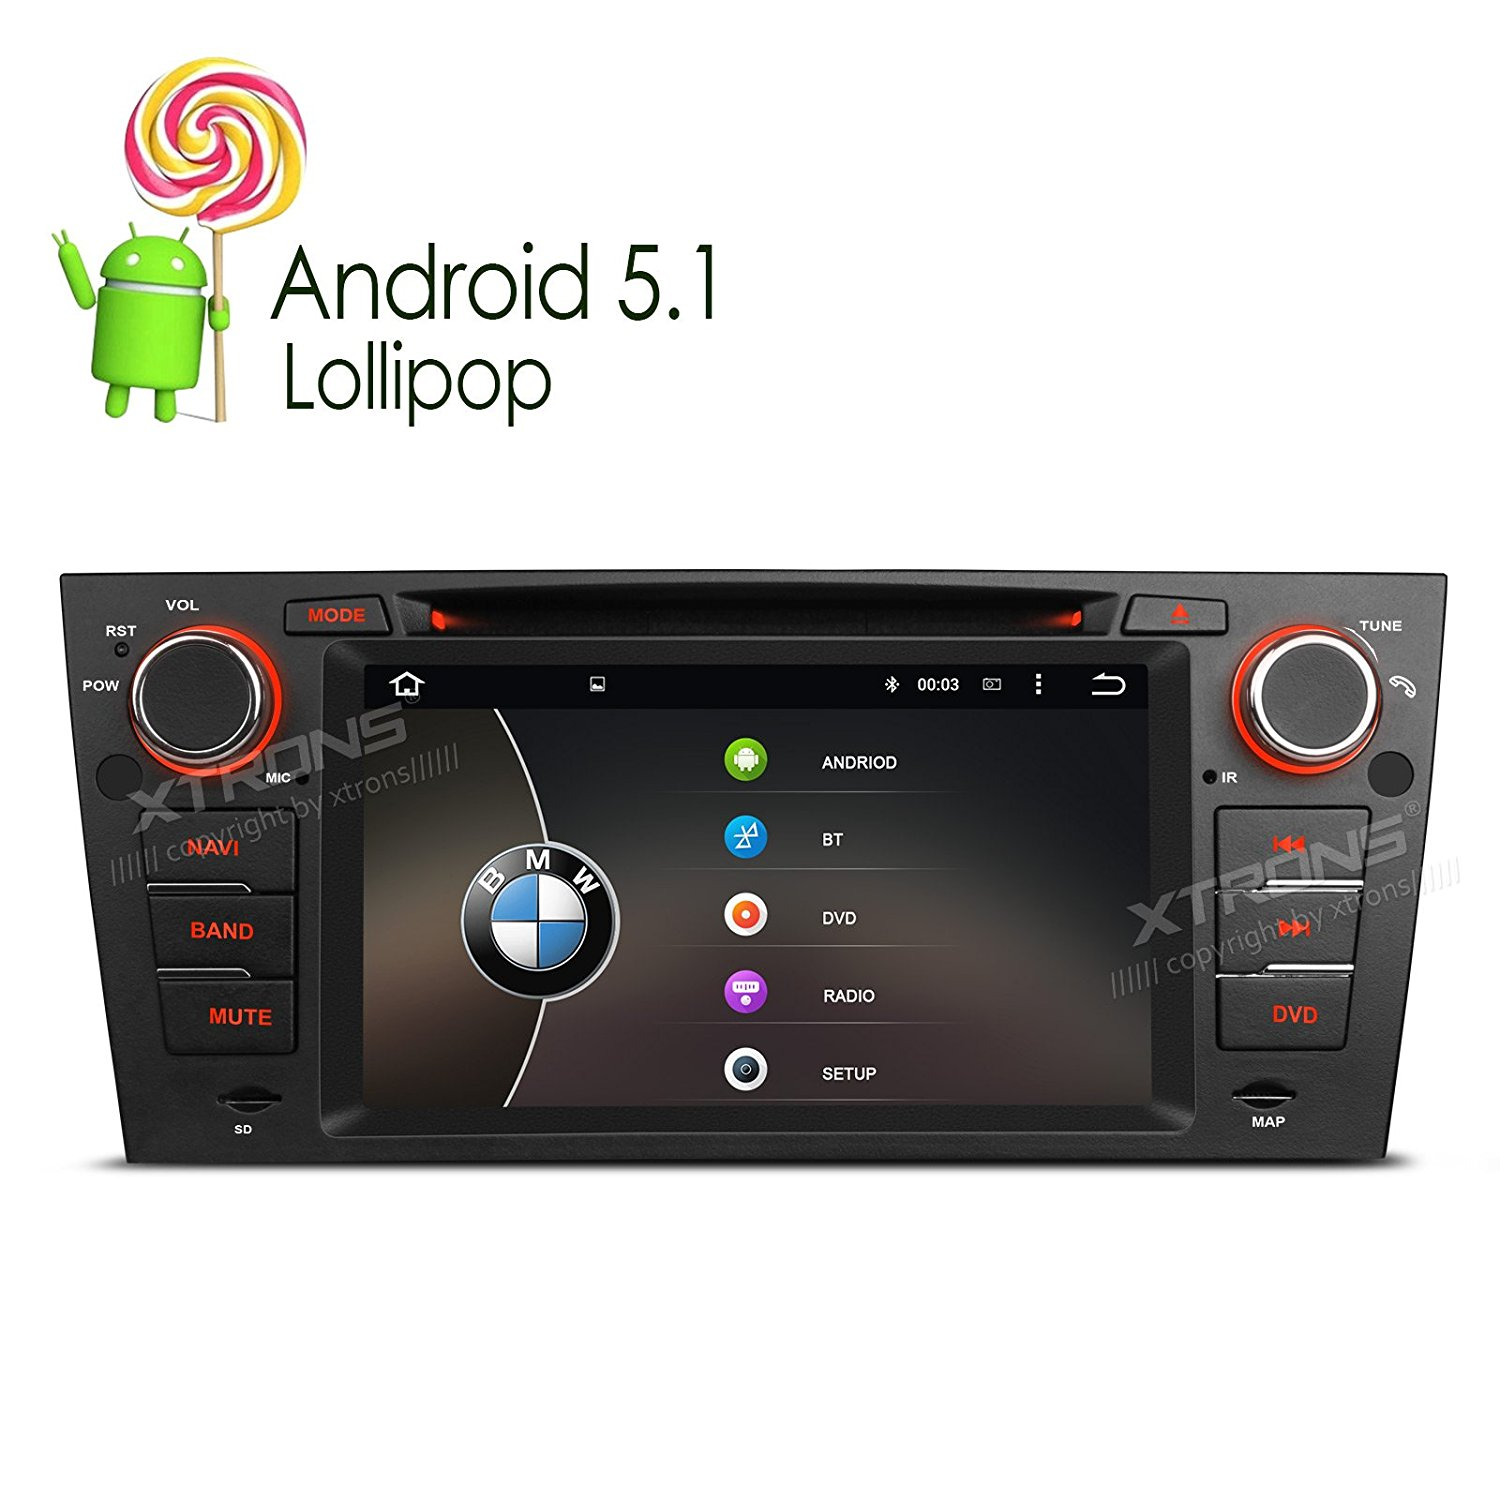 Cheap Bmw E90 Double Din Find Deals On Line At 328i Get Quotations Xtrons 7 Inch Quad Core Android 51 Lollipop Car Stereo Multi Touch Screen Radio Dvd